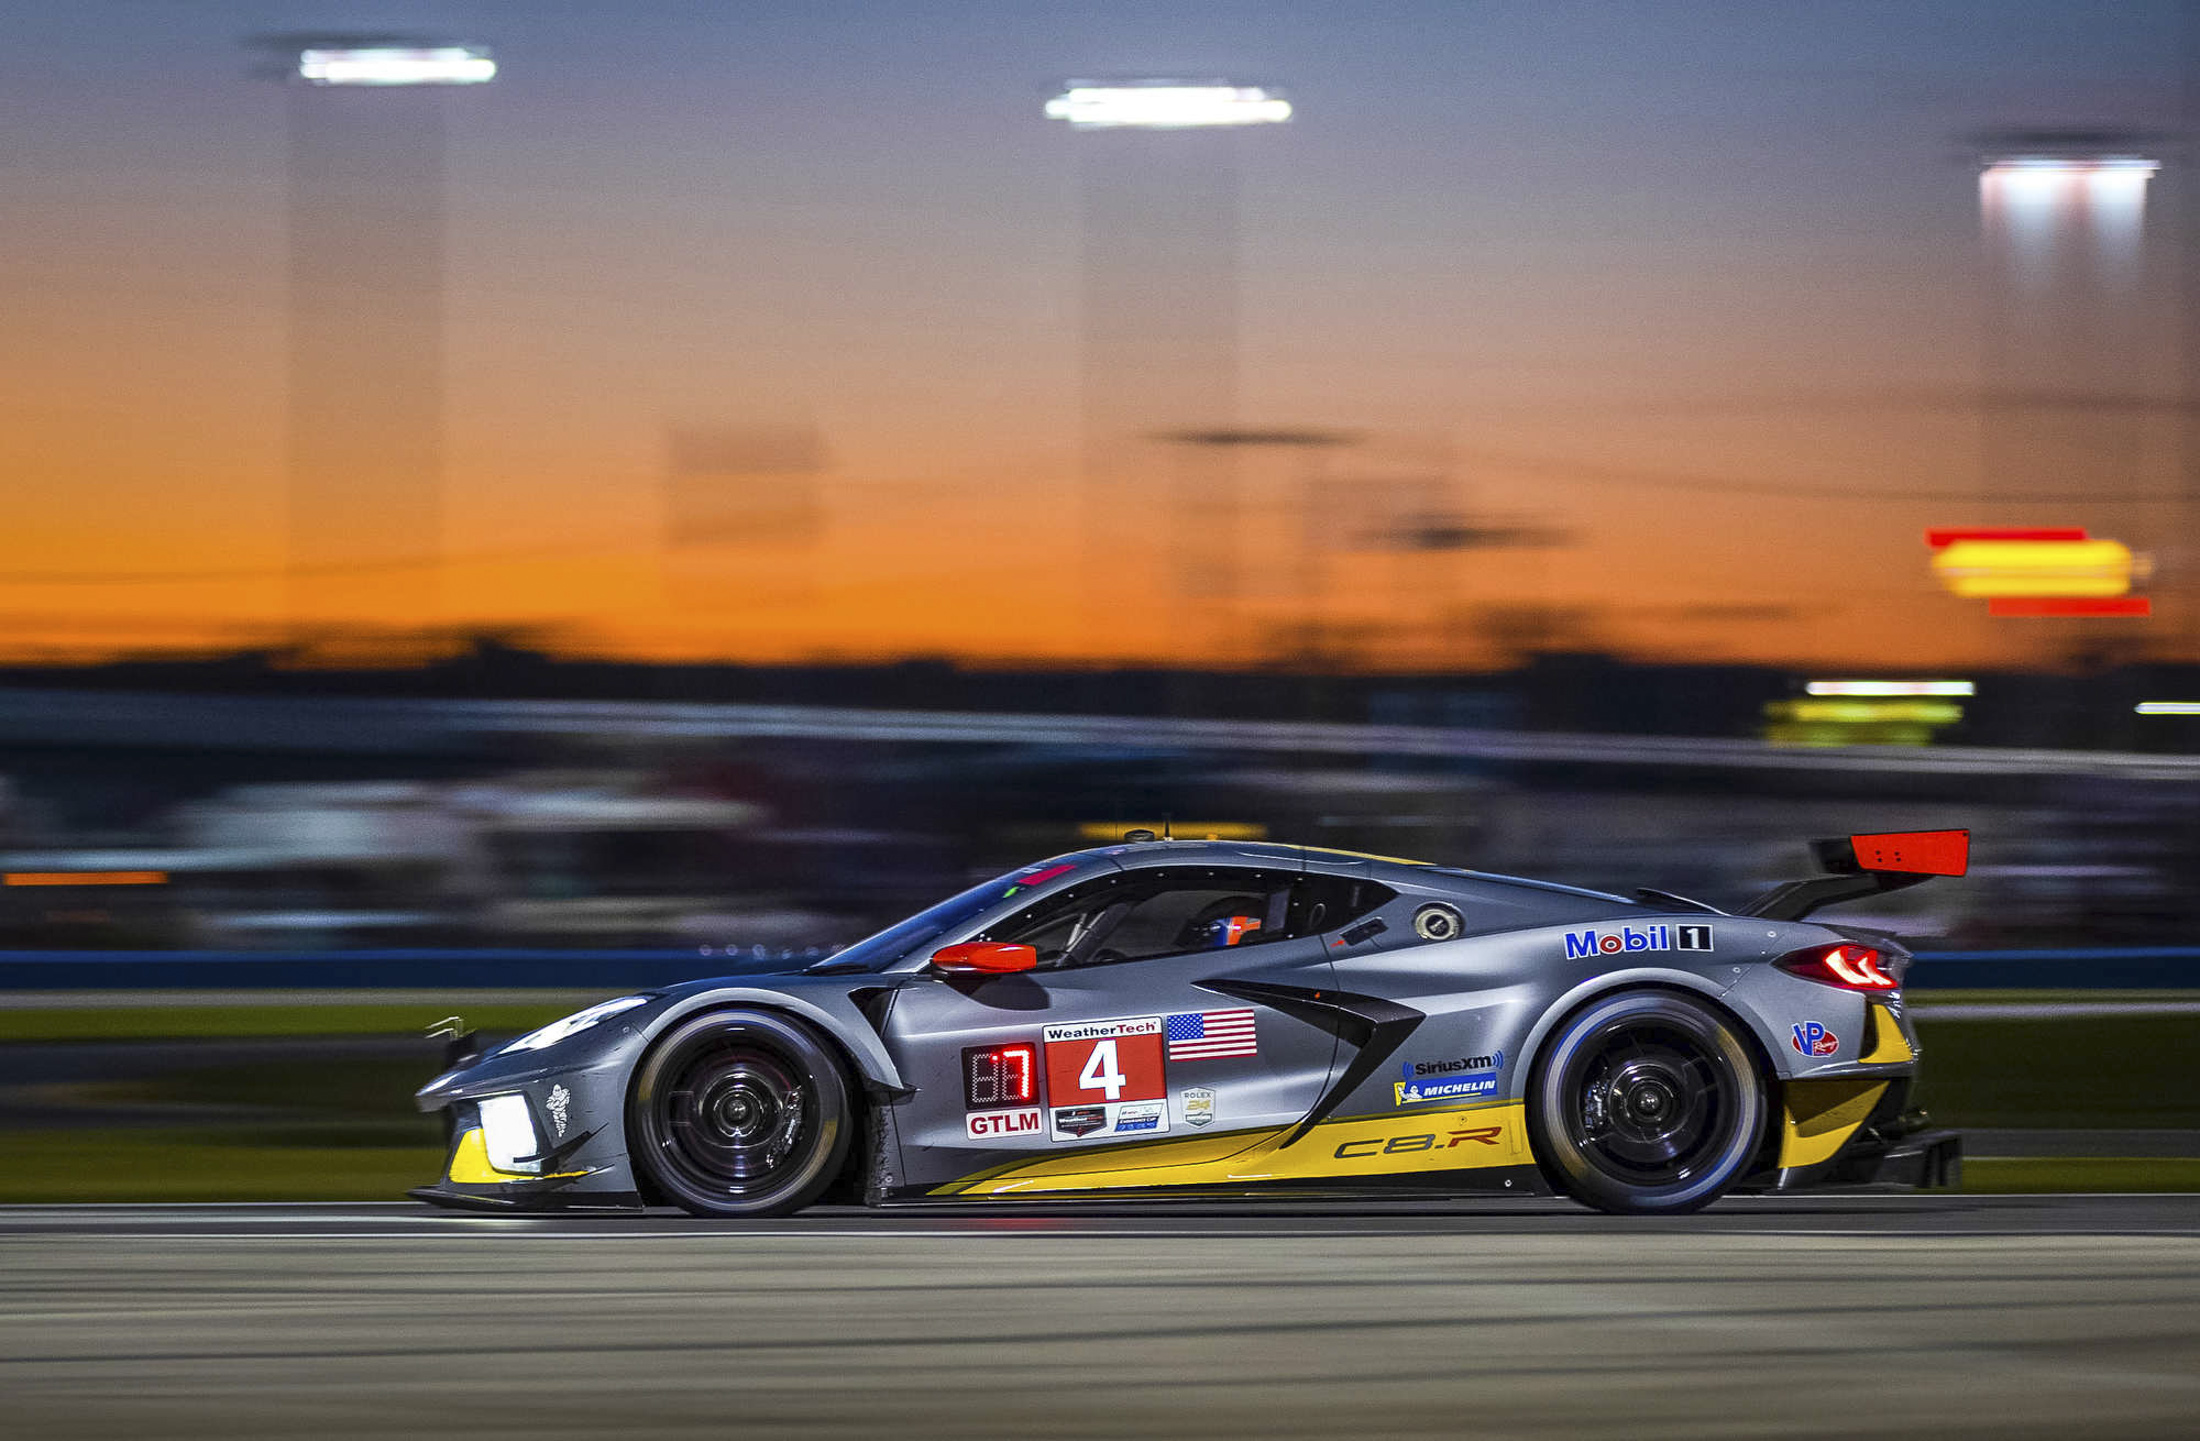 The #4 Mobil 1/SiriusXM Chevrolet Corvette C8.R driven by Tommy Milner, Oliver Gavin and Marcel Fässler race to a seventh place finish in the GTLM class Saturday and Sunday, January 25-26, 2020 during the 24-hour IMSA WeatherTech SportsCar Championship's Rolex 24 at Daytona in Daytona Beach, Florida. This is the first race for the new, first-ever mid-engine Corvette C8.R. (Photo by Richard Prince for Chevy Racing)